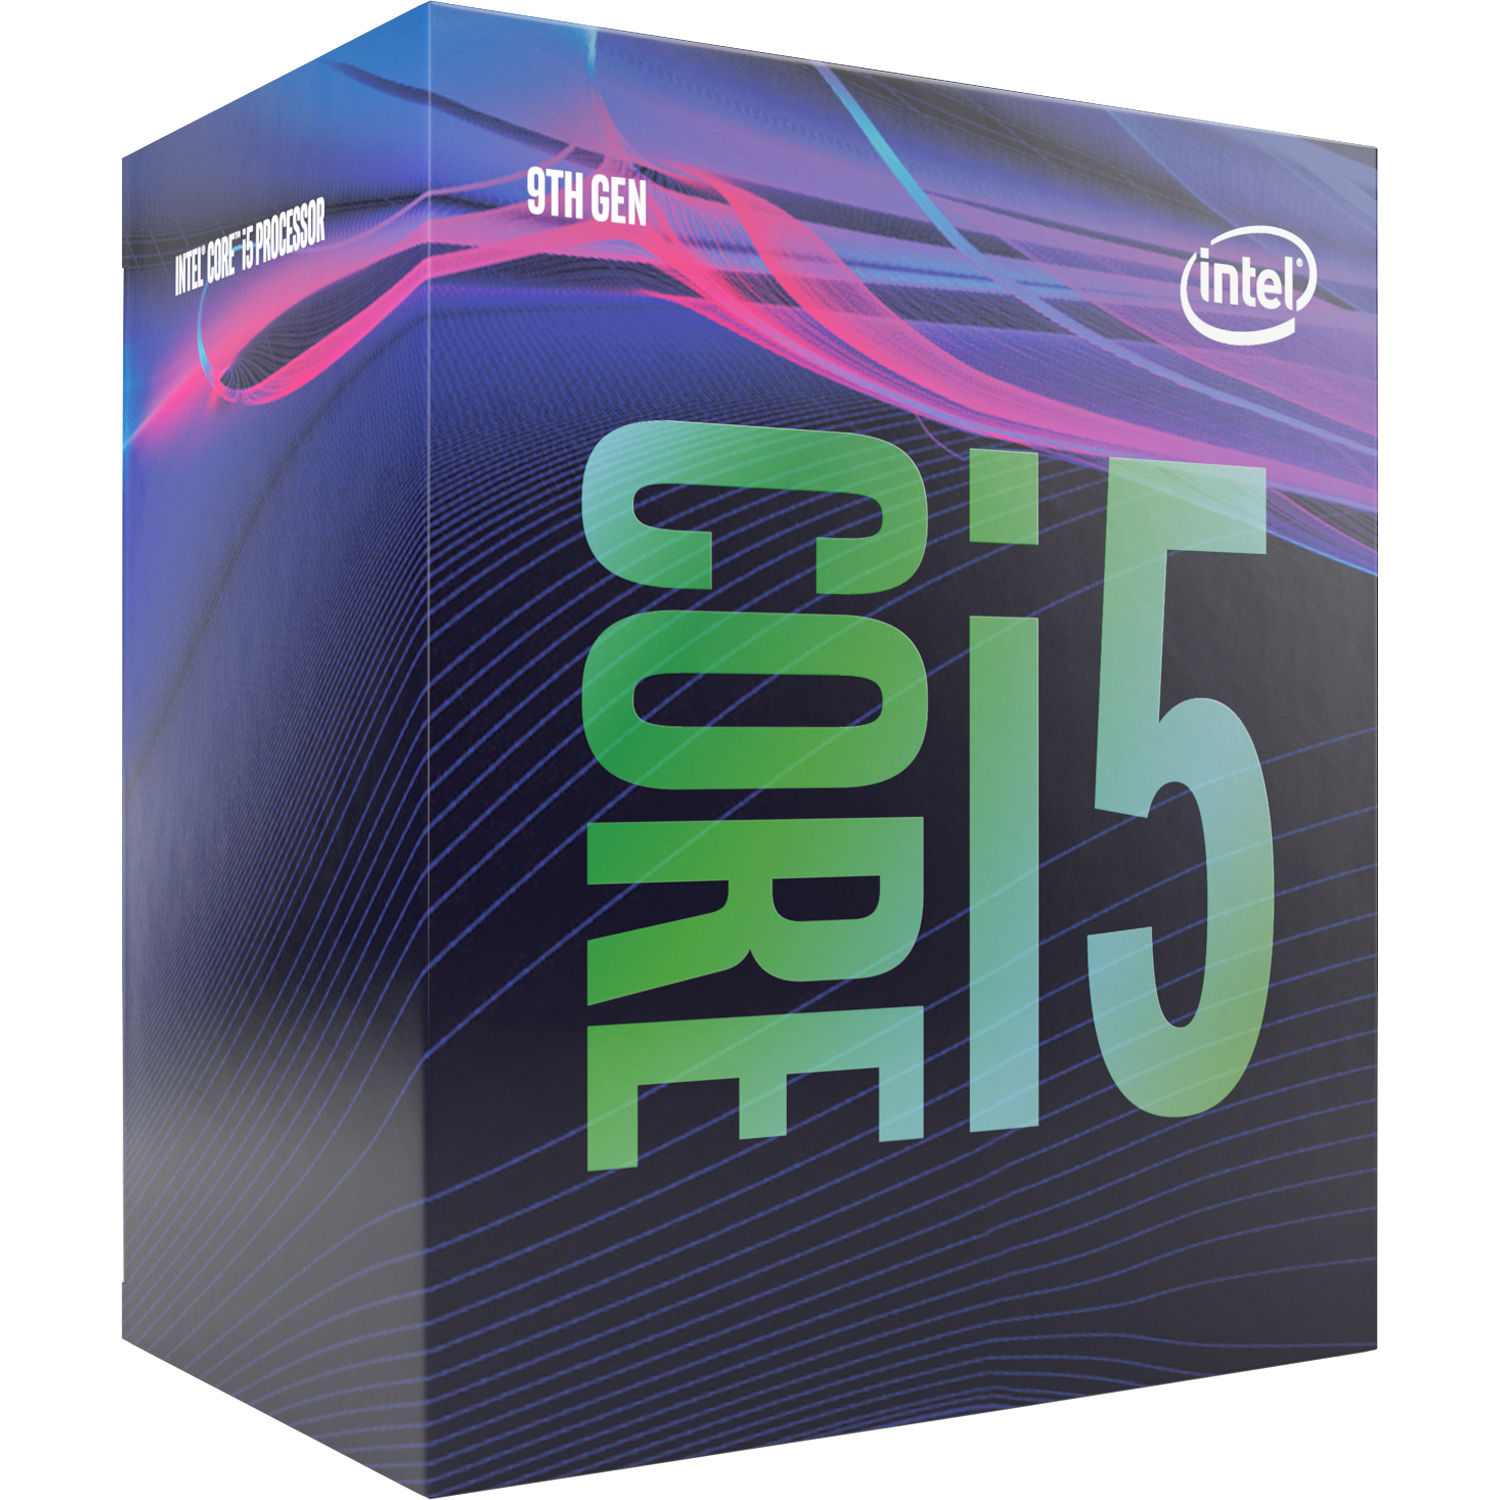 INTEL CPU Core i5-9500, BX80684I59500